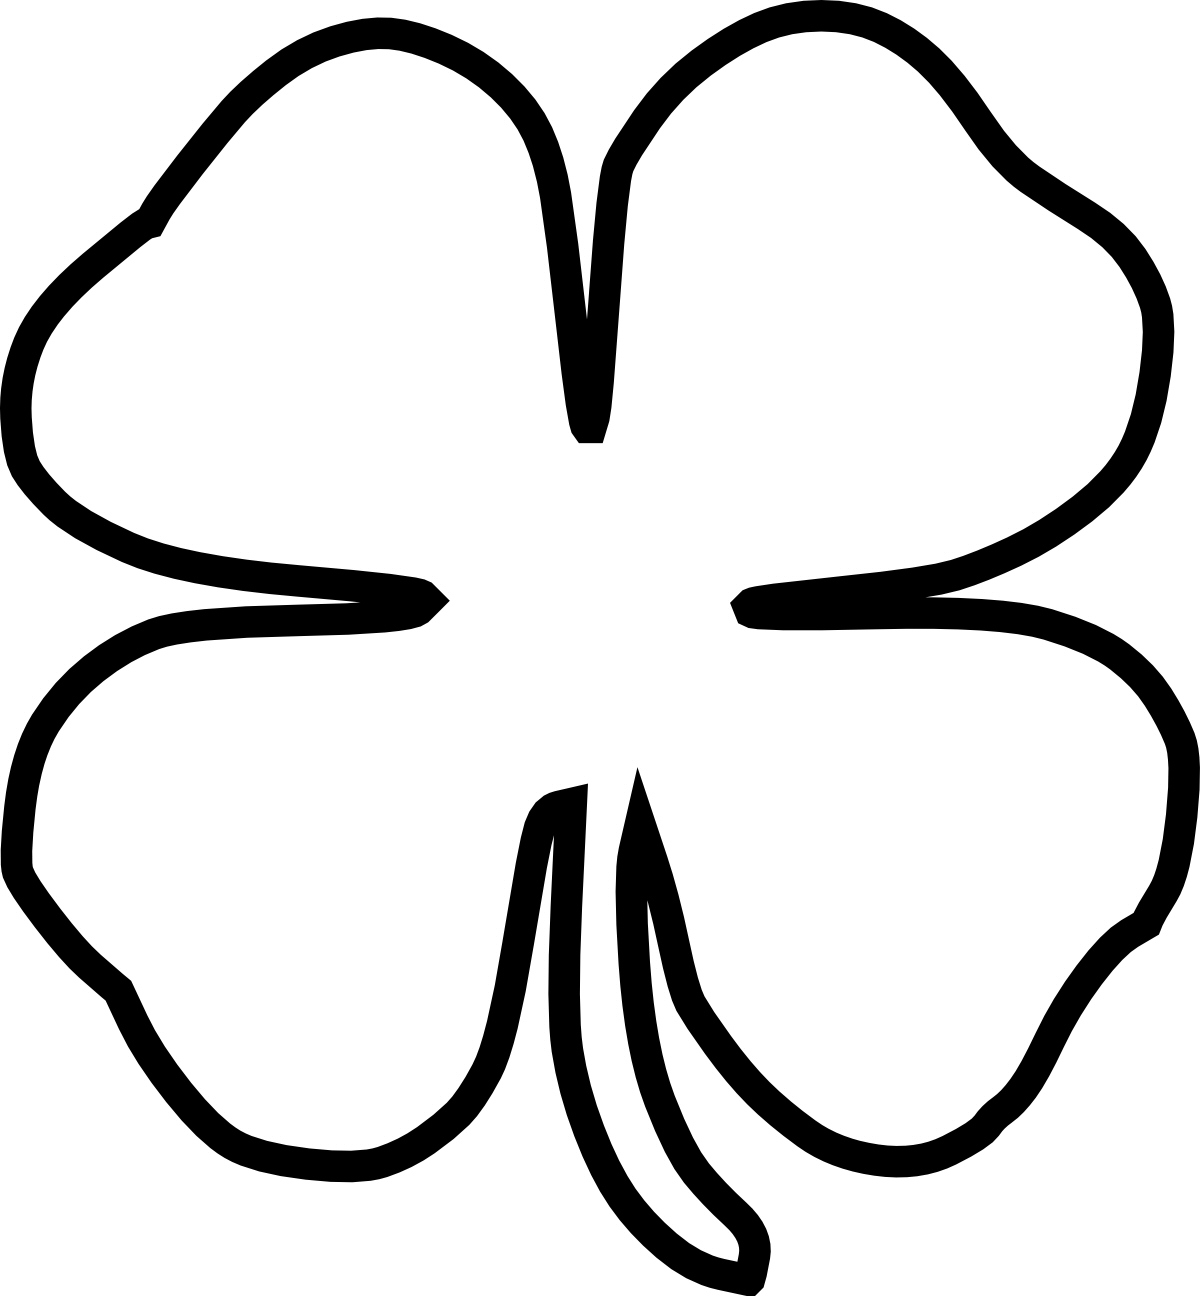 Four Leaf Clover Clipart.